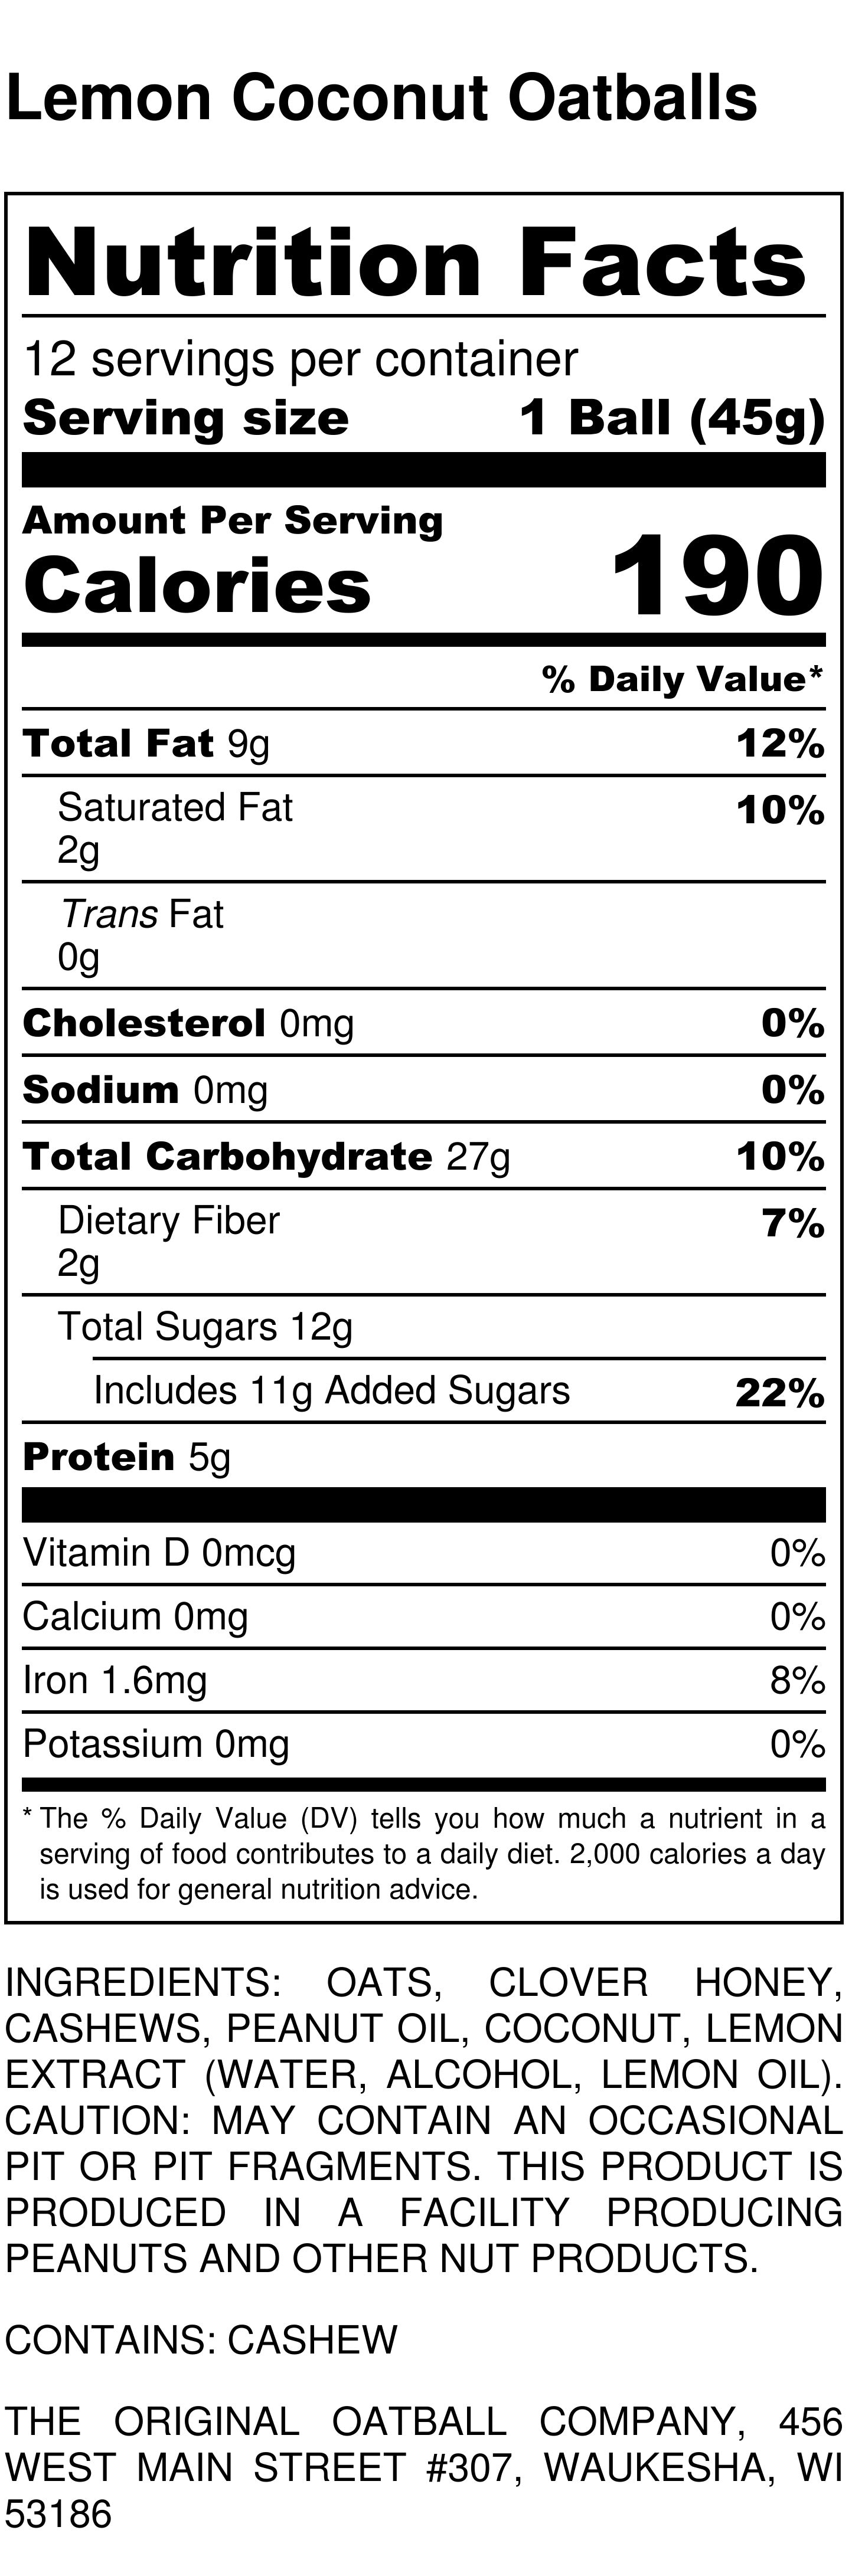 Lemon Coconut OatballsNutrition Label